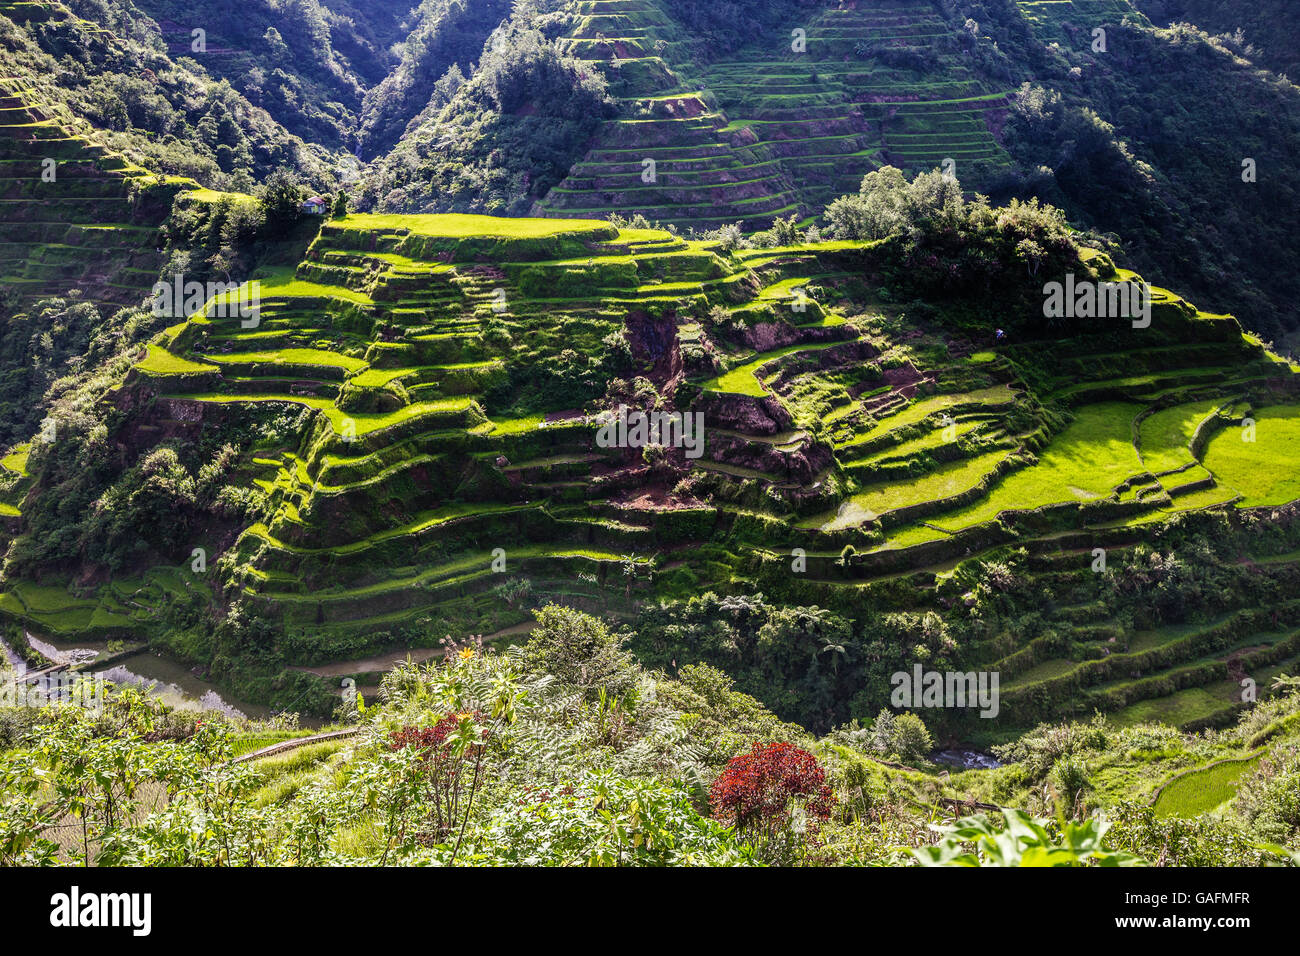 Banaue Rice Terraces represent an enduring illustration of an ancient civilization that has survived despite modernization - Stock Image